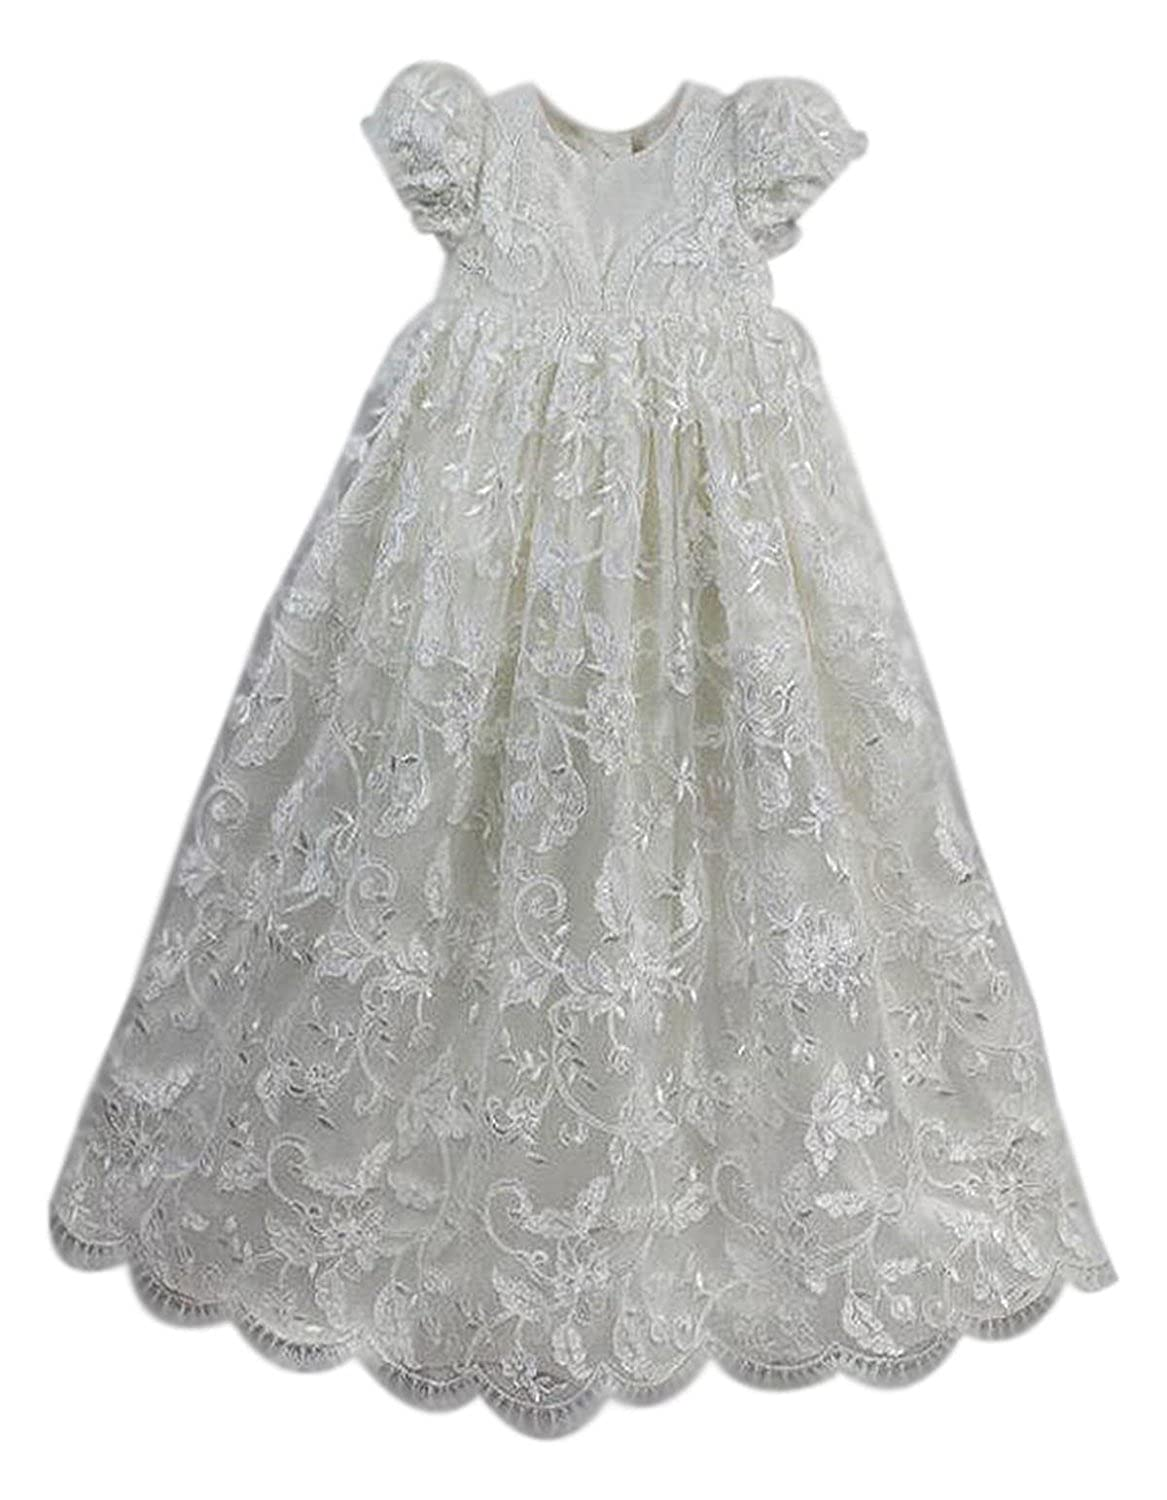 Unisex Baby Puff Cap Sleeve Long Lace Infant Toddler Christening Gowns With Bonnet